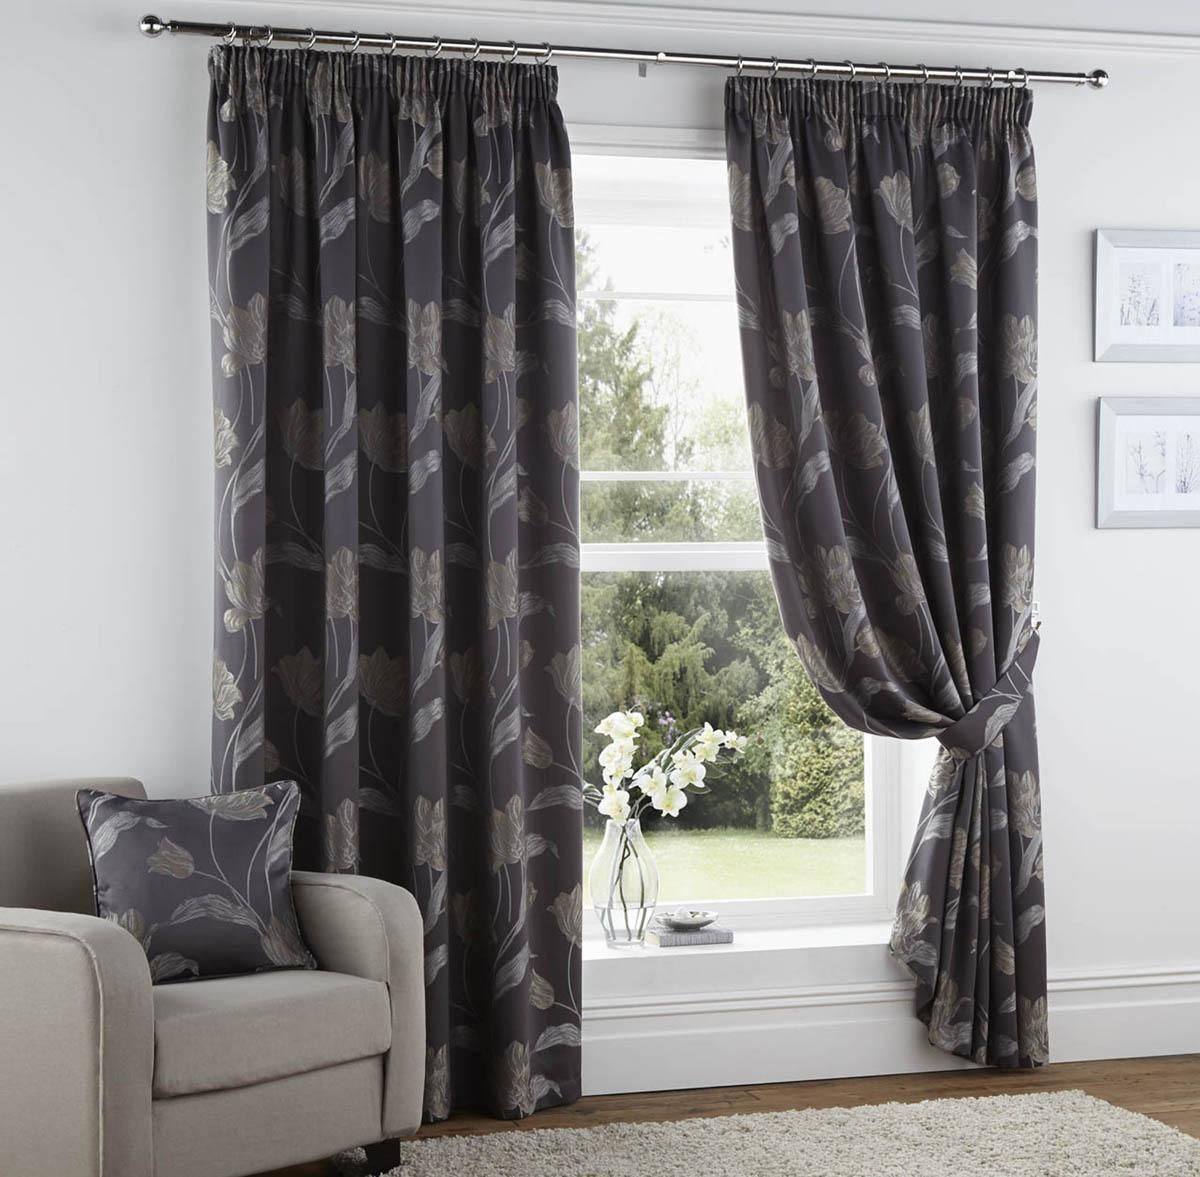 Pin Curtains Readymade Pencil Pleat Curtains And Rugs Chic At Hom On   57  Str Sissinghurst